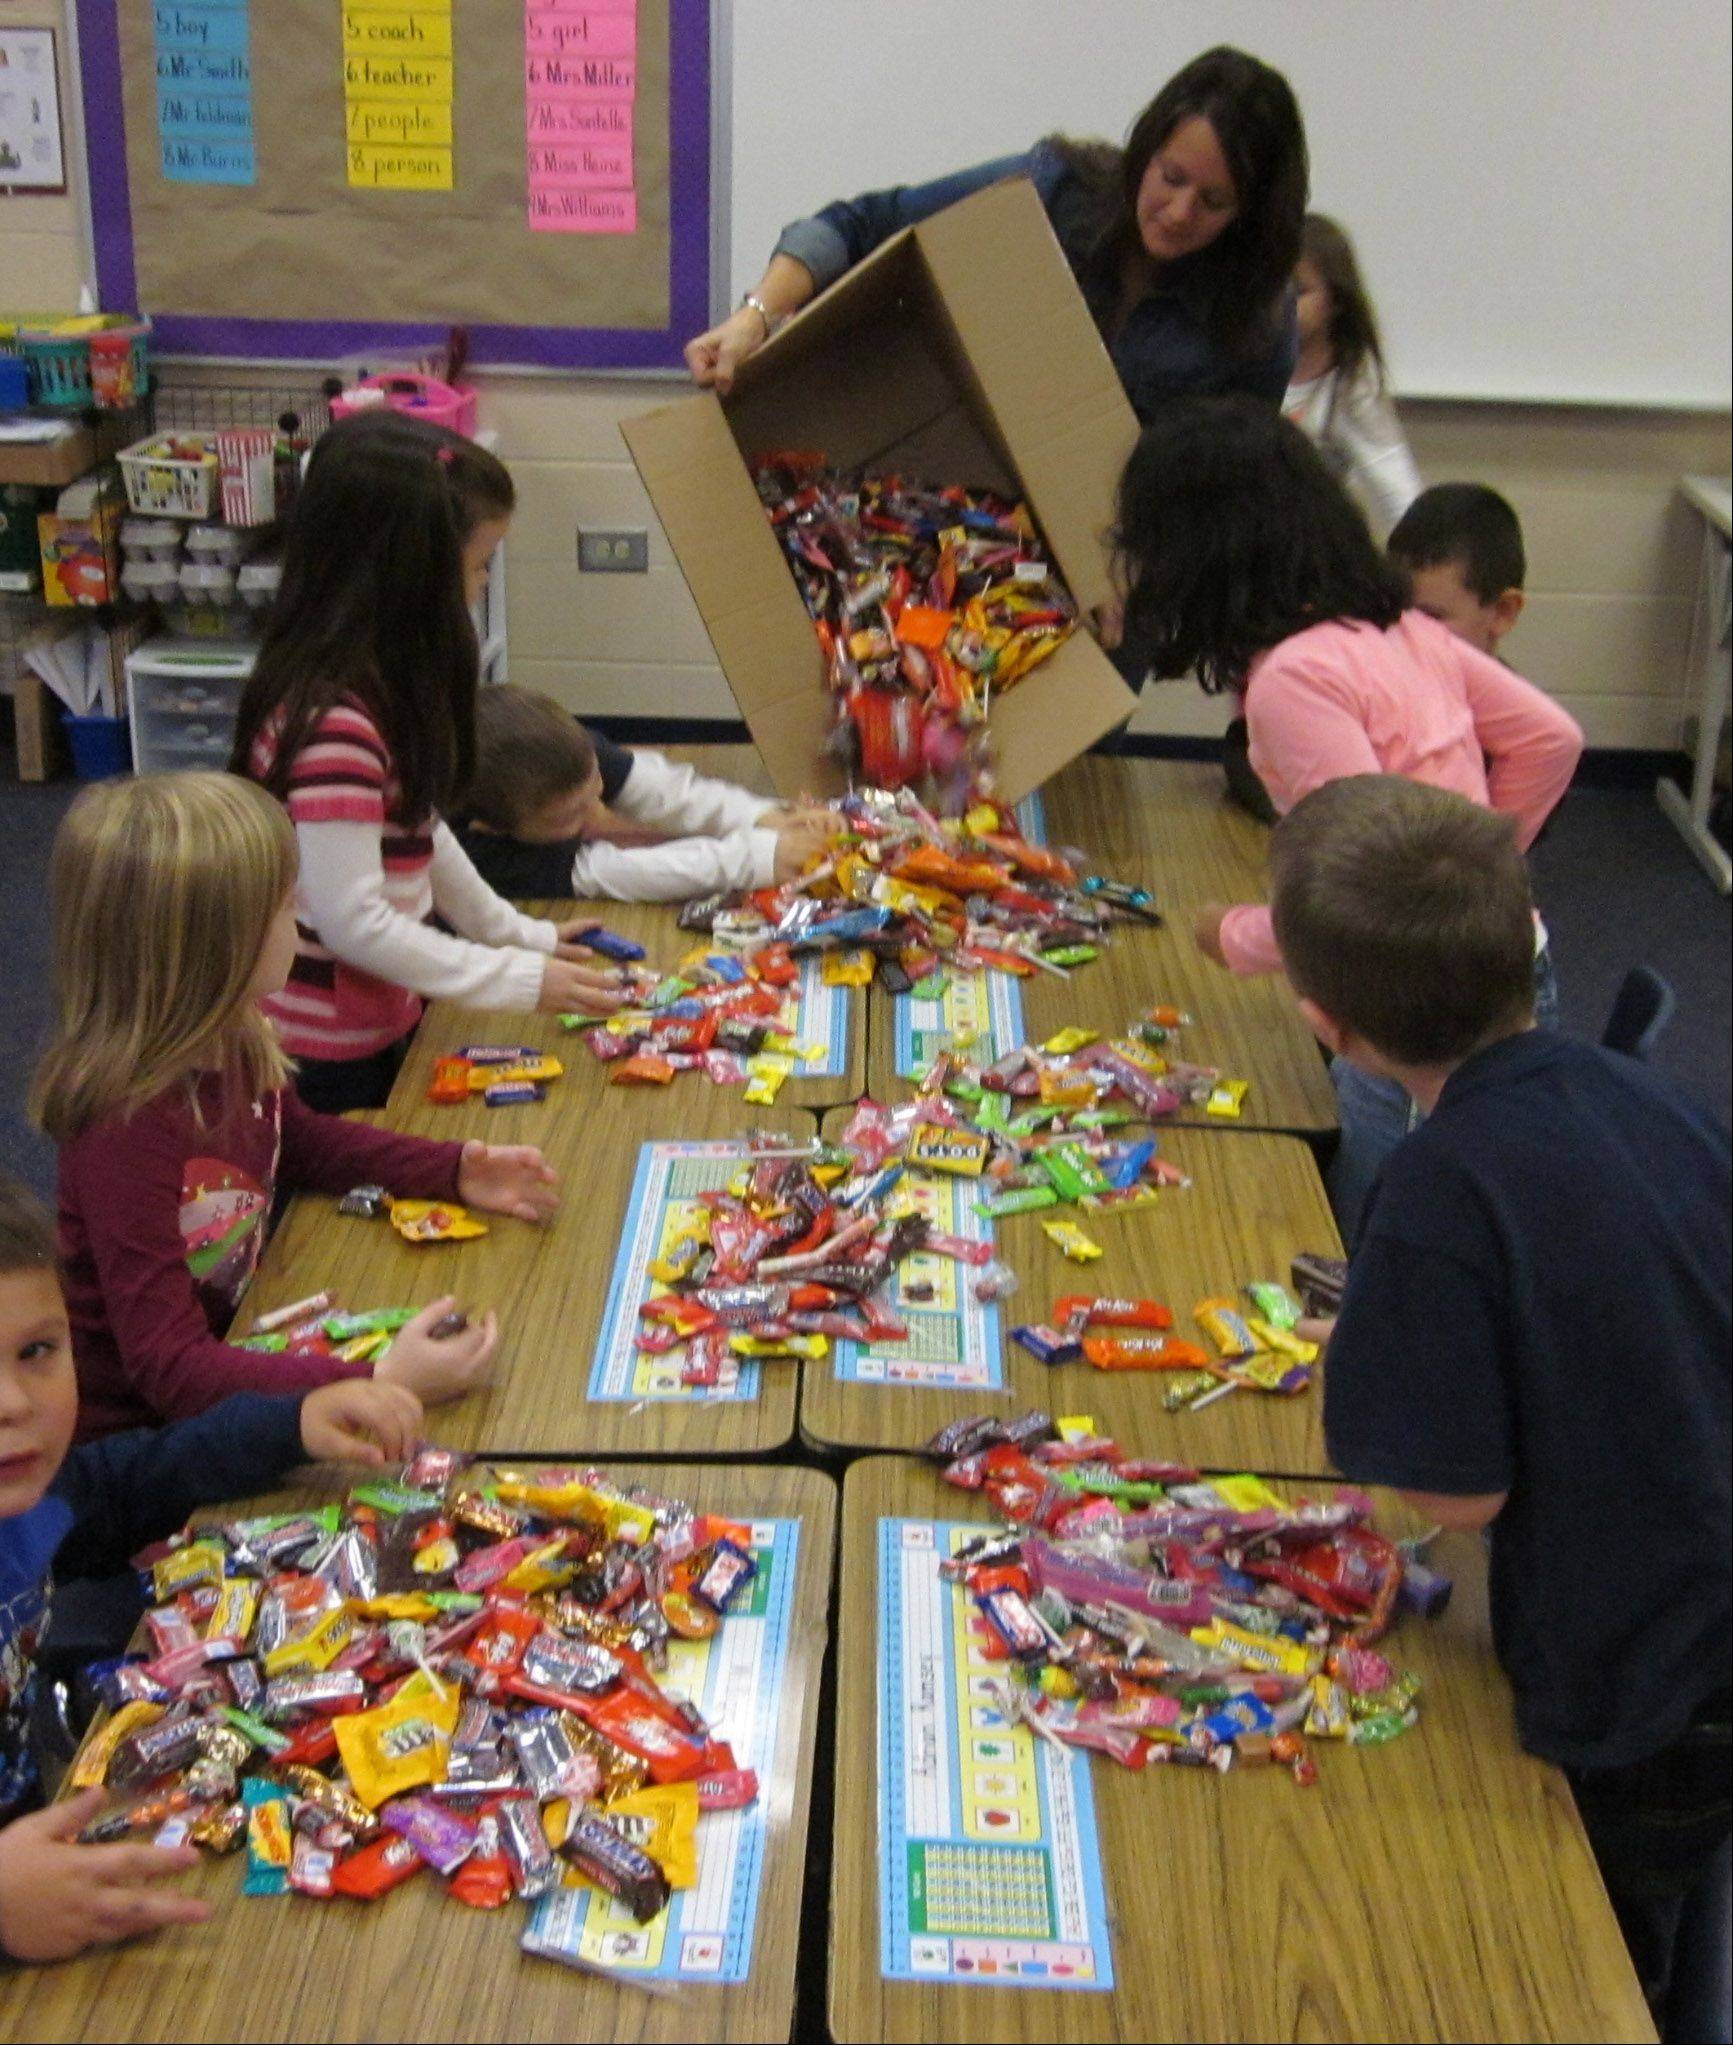 Jennifer Miller, first-grade teacher at Woodview School in Grayslake, has students in her classroom Tuesday sorting Halloween candy they donated for overseas U.S. troops.